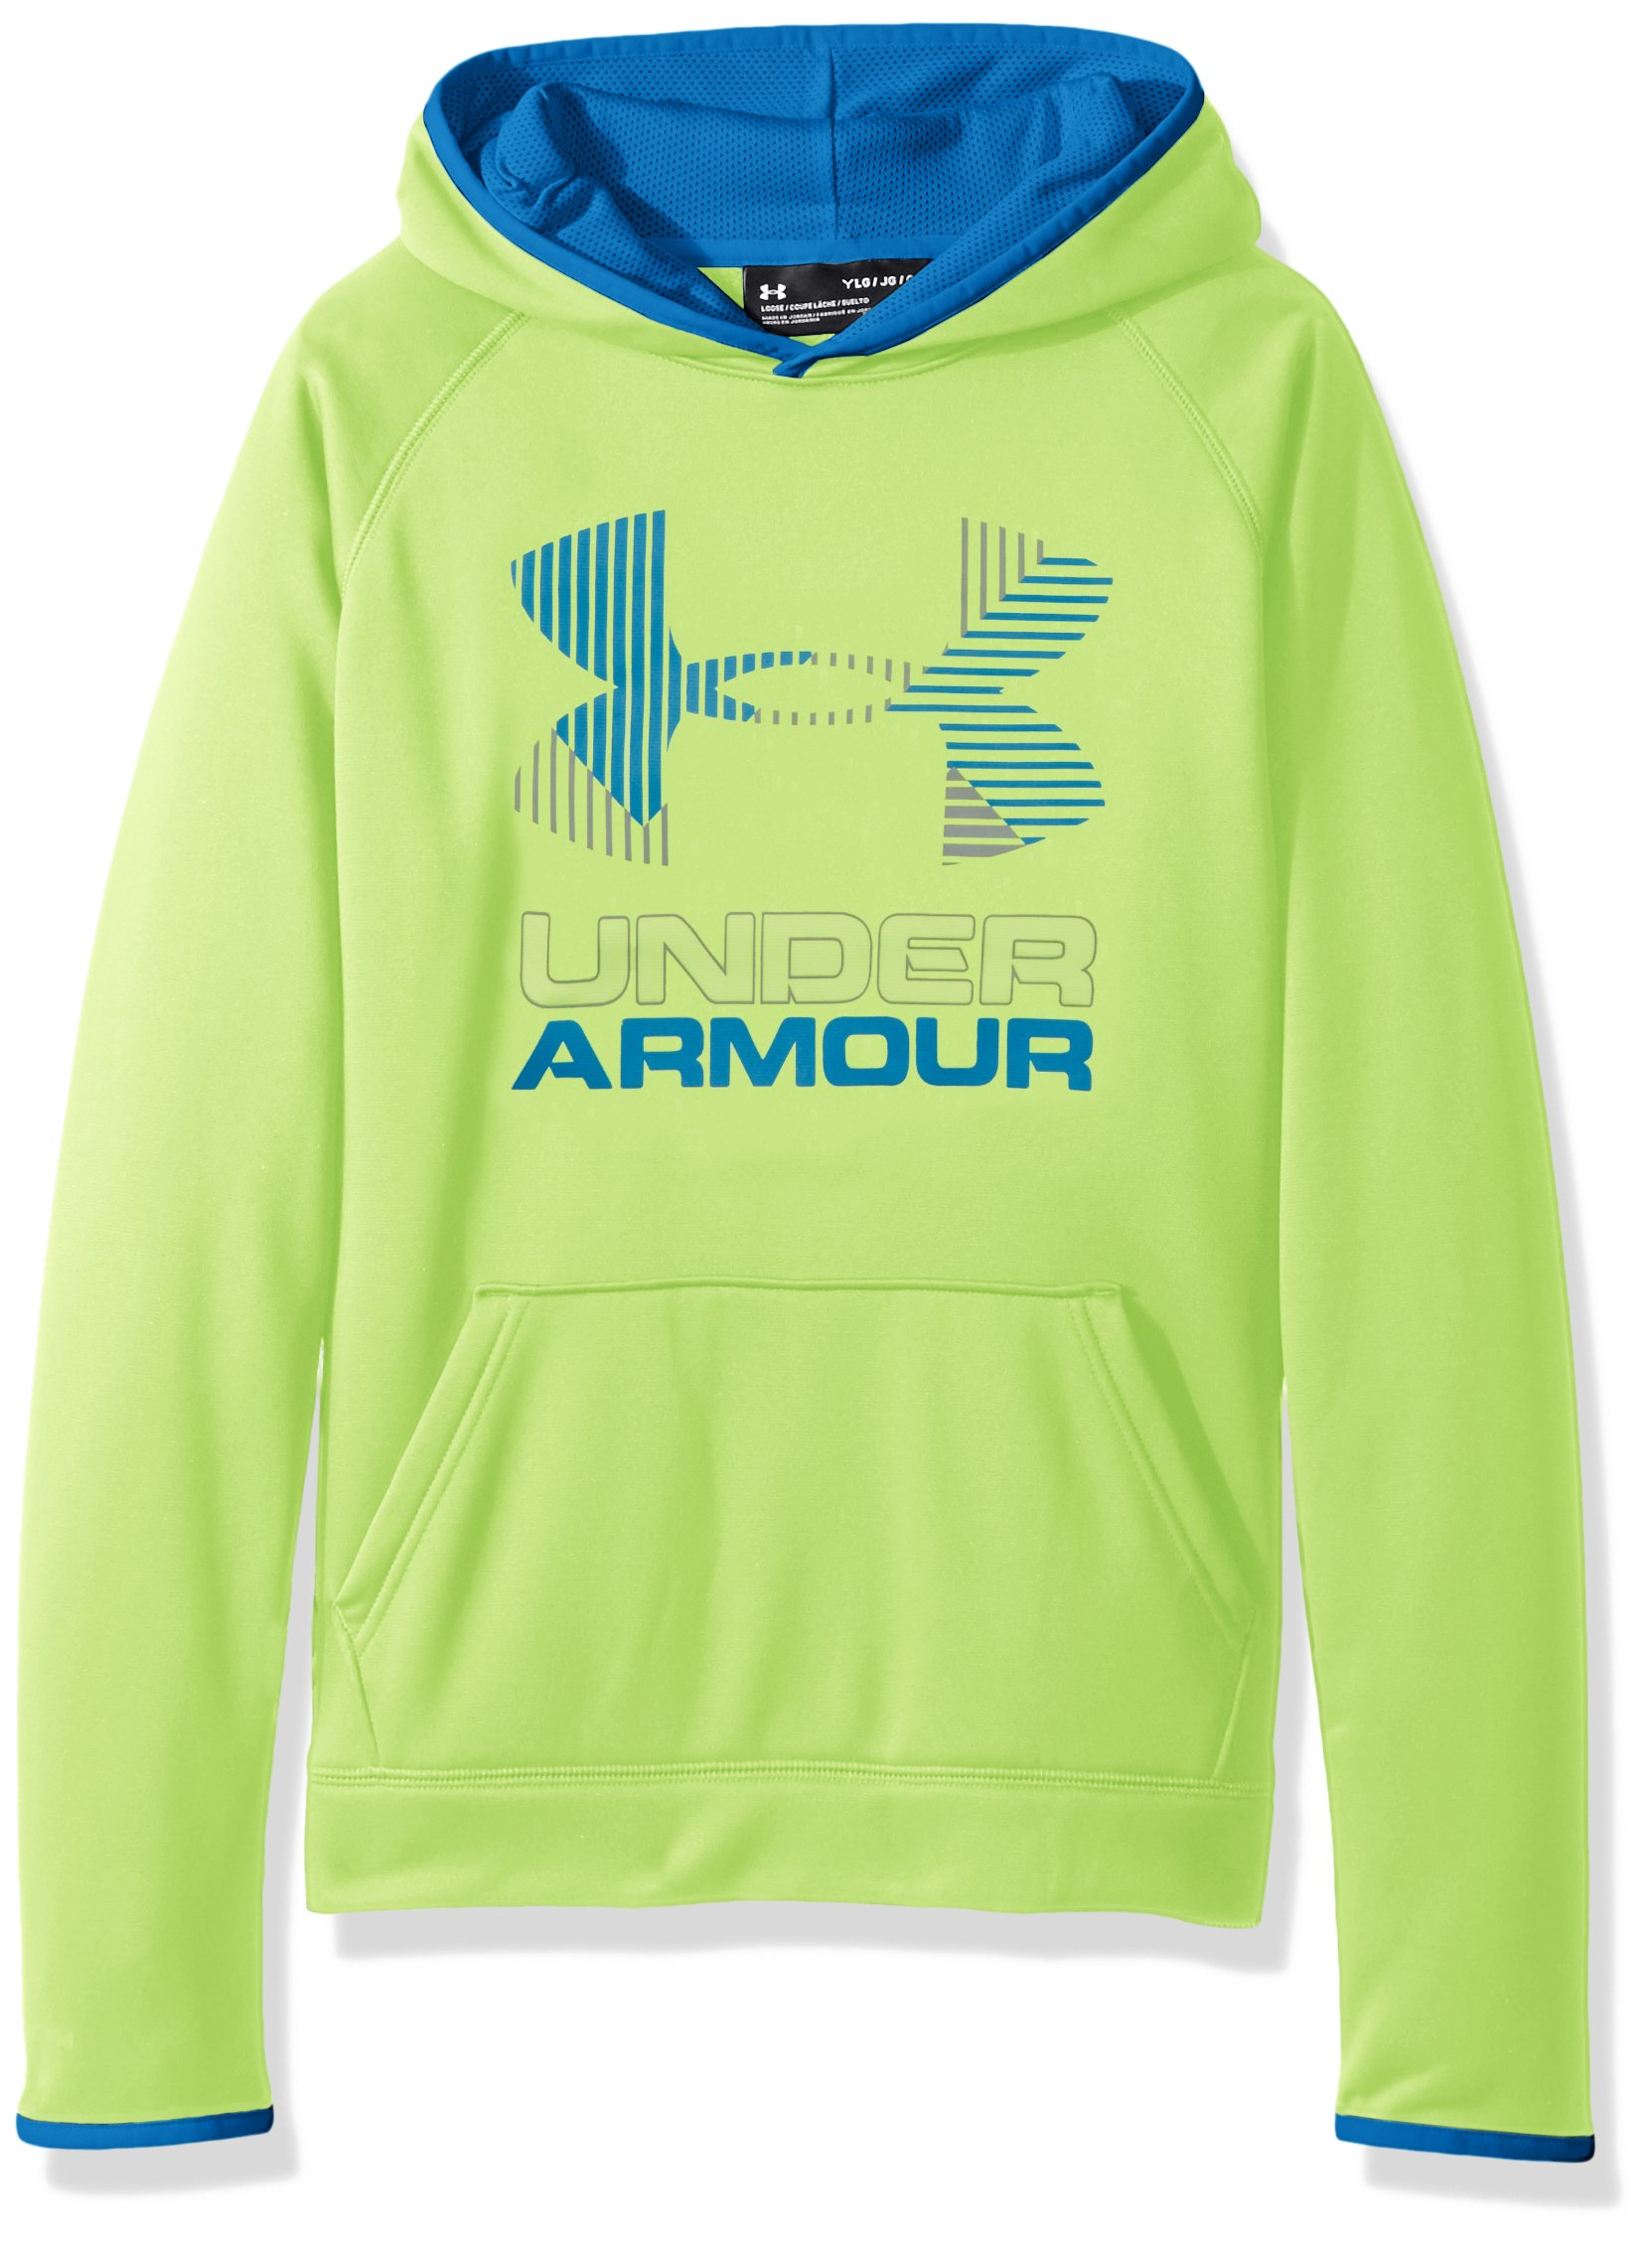 Under Armour Boys' Armour Fleece Solid Big Logo Hoodie, Quirky Lime /Steel, Youth X-Small by Under Armour